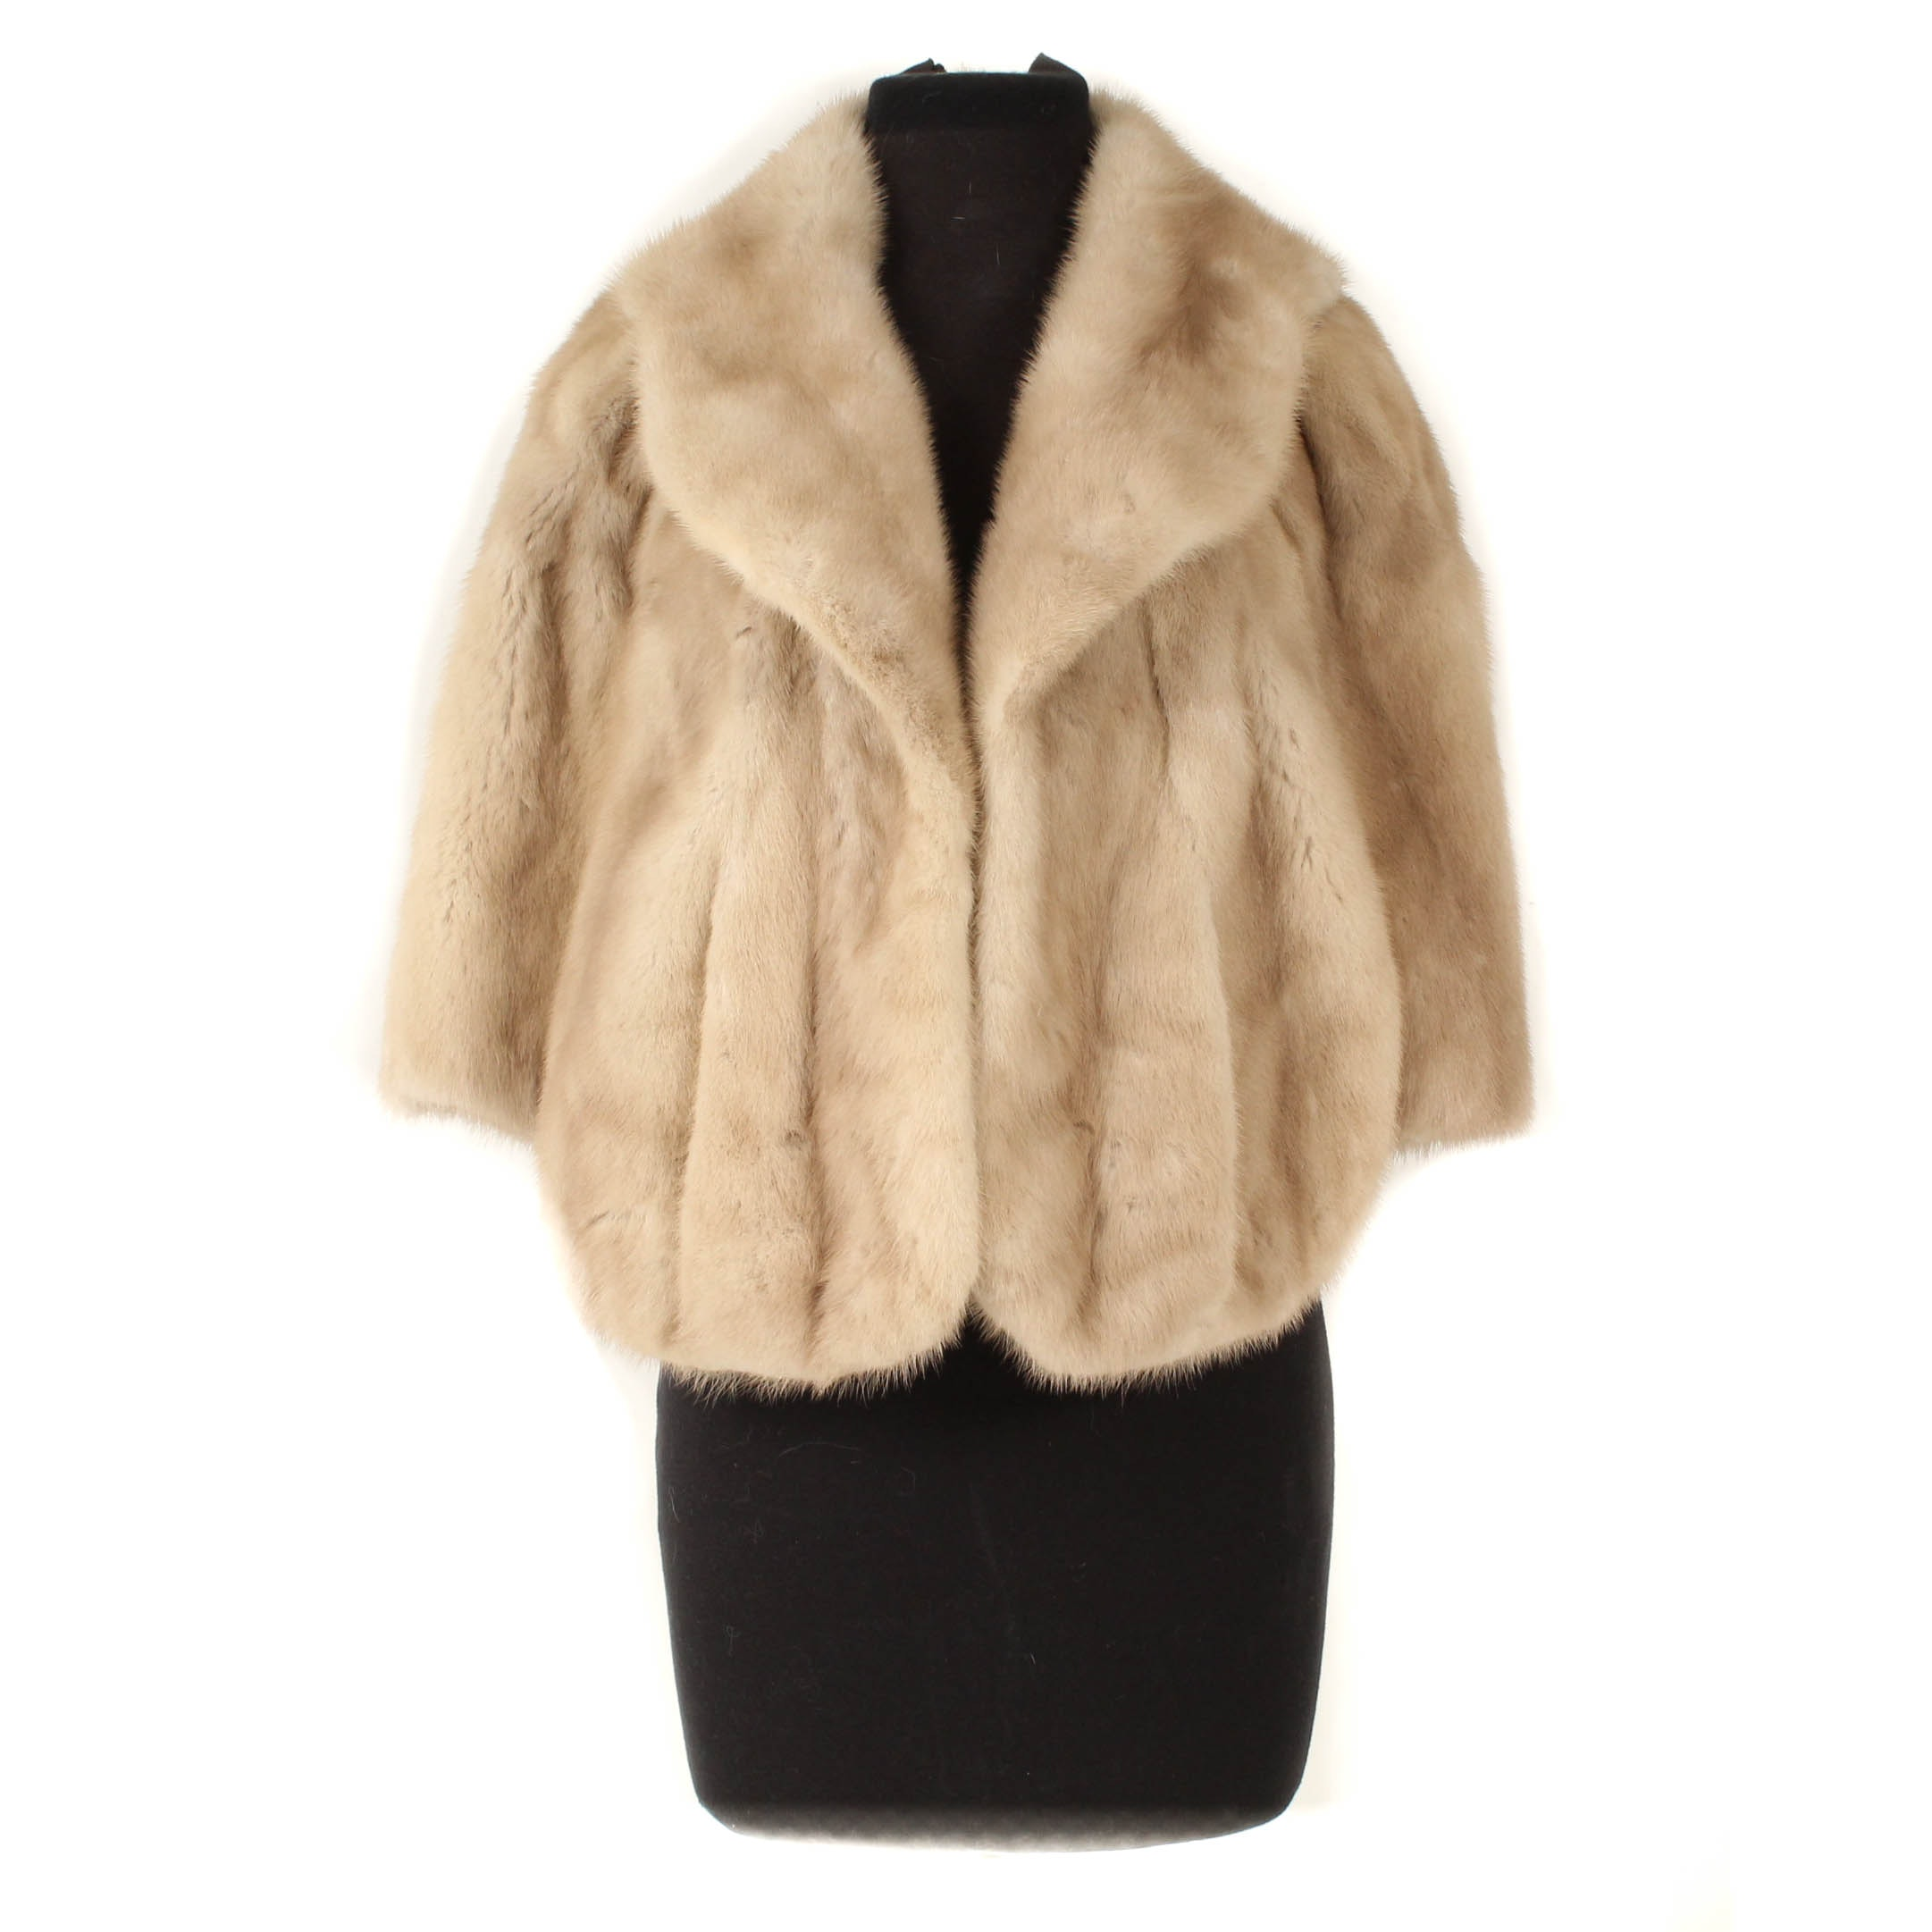 Vintage Blonde Mink Fur Capelet by L.L. Berger